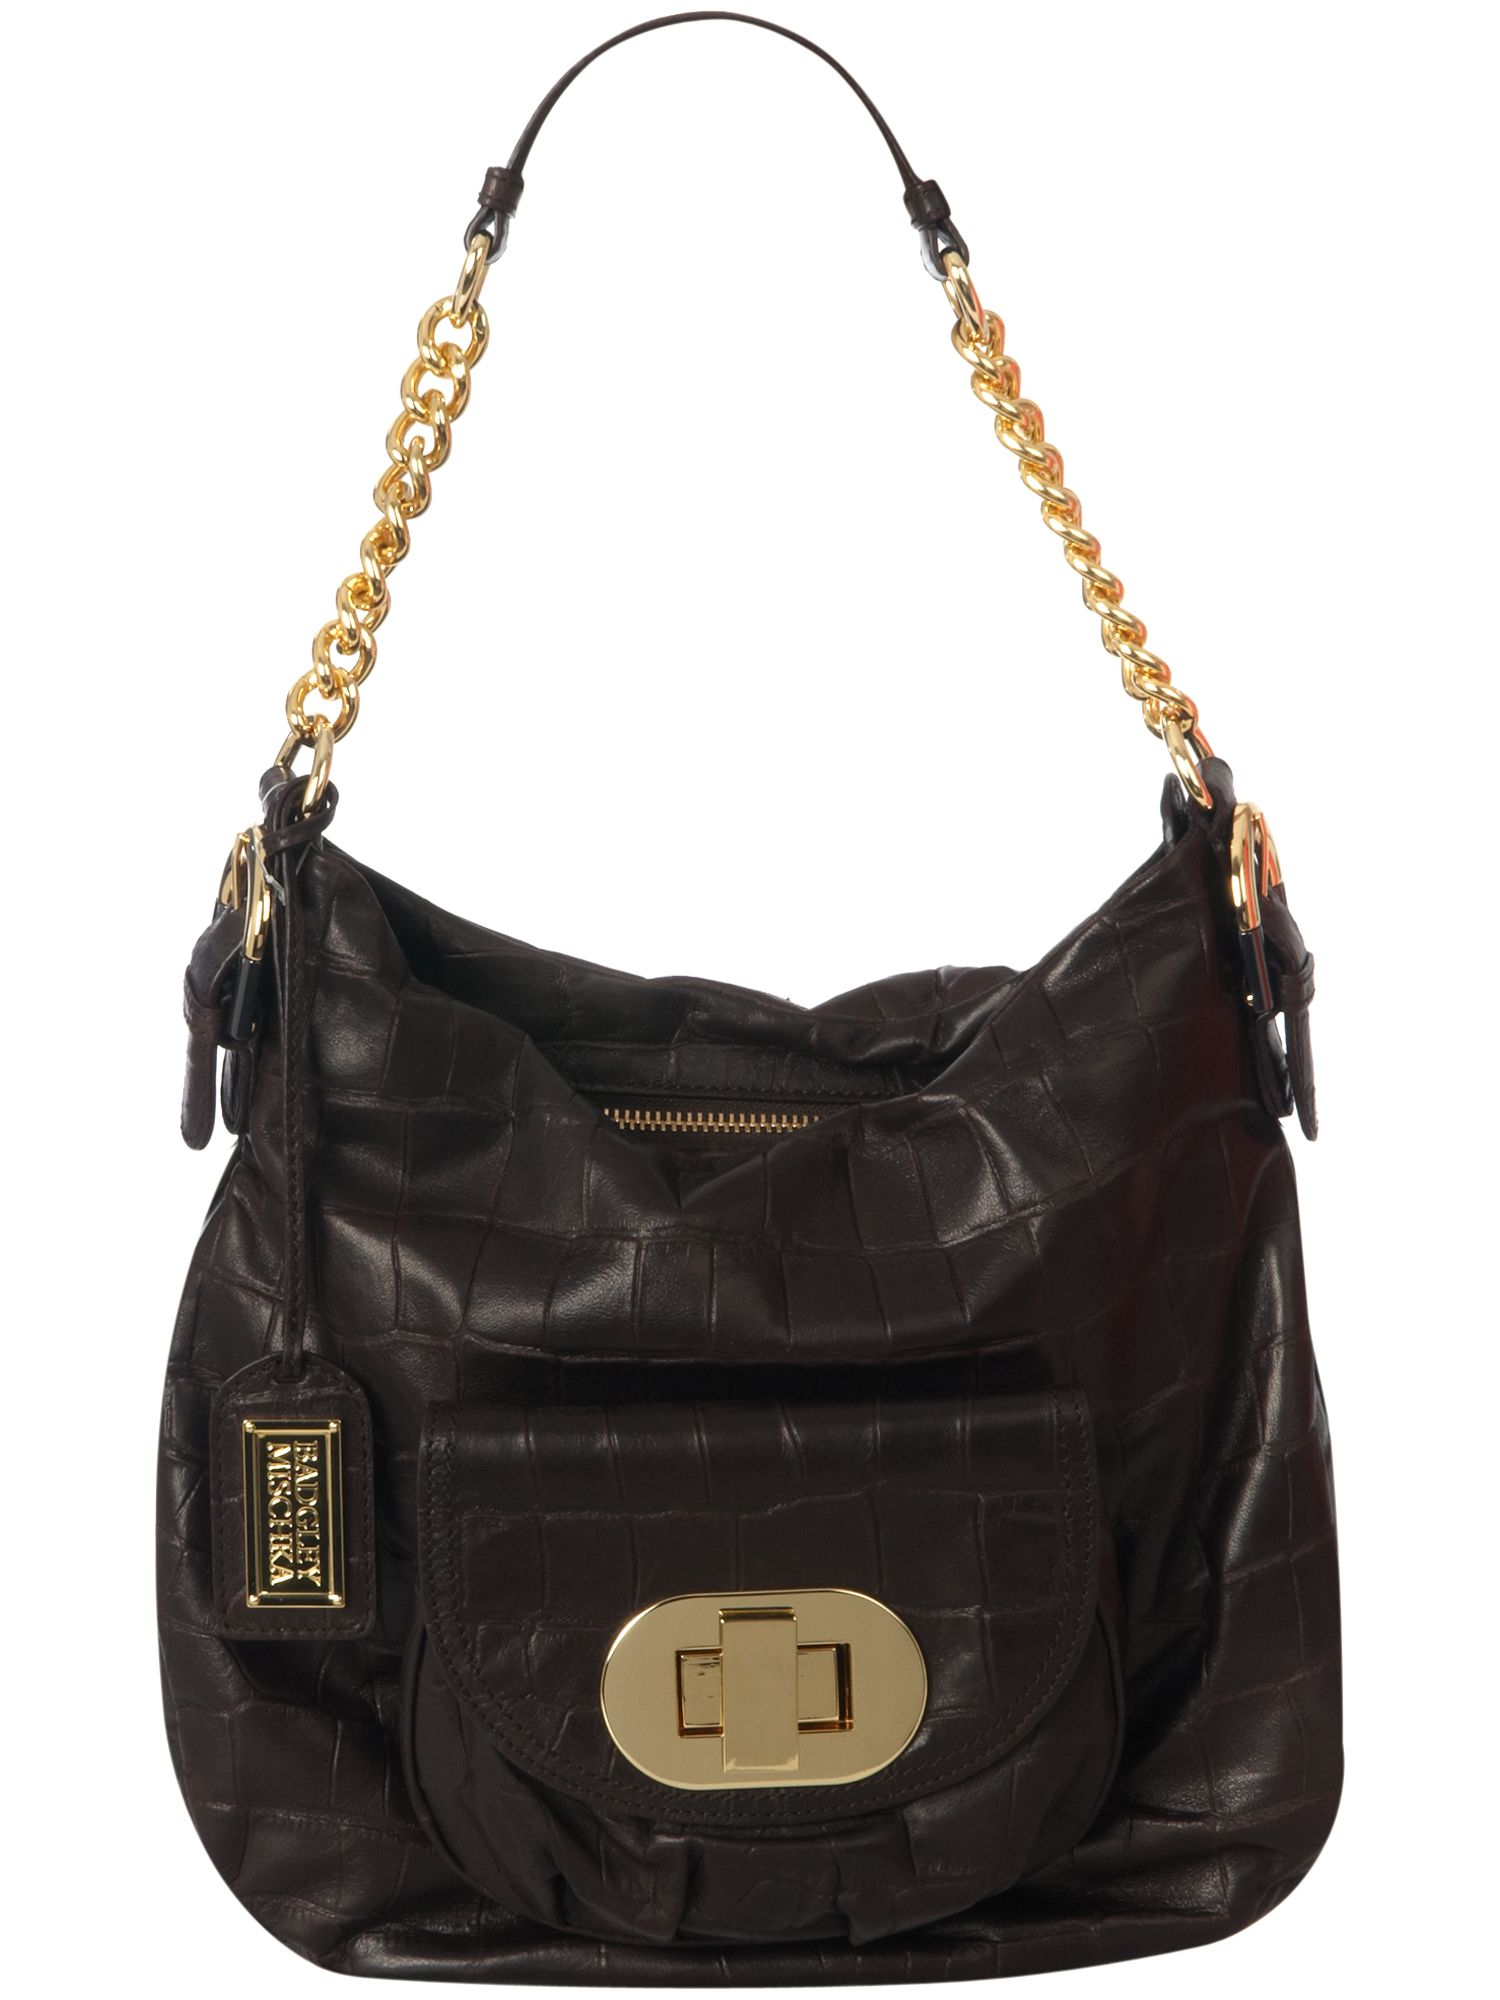 Connie Croco large leather